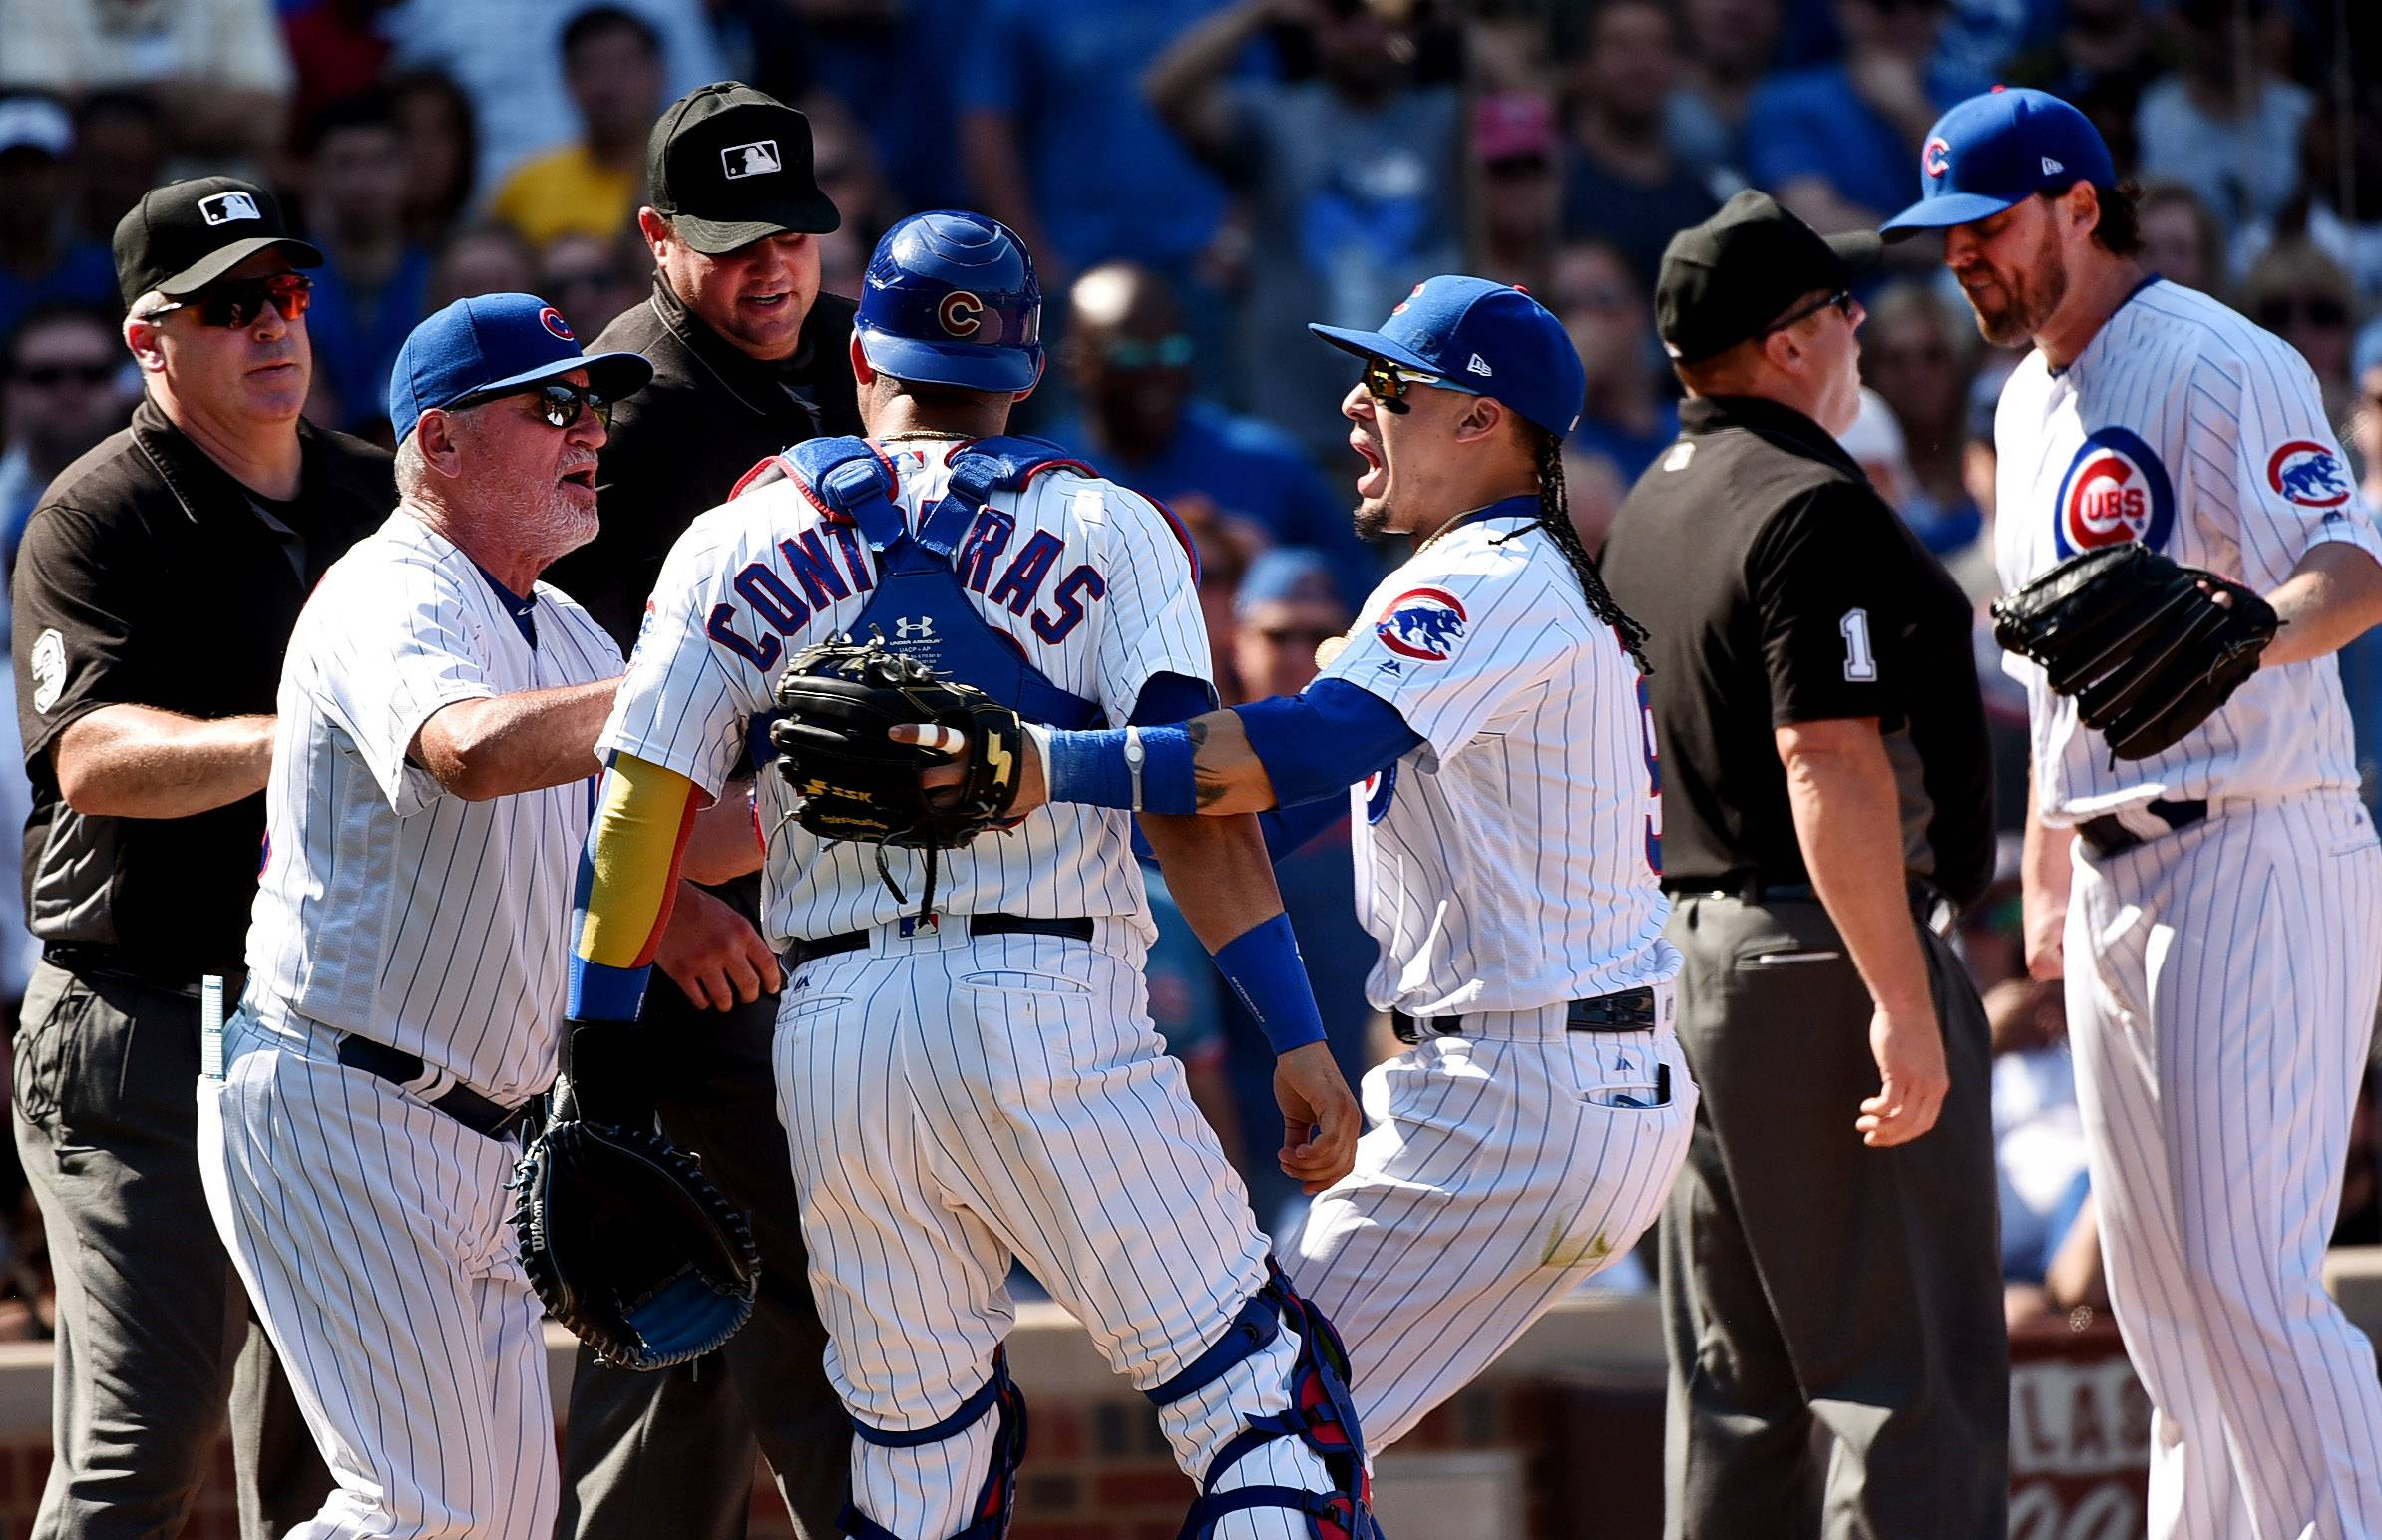 Chicago Cubs catcher Willson Contreras (40) is restrained by Chicago Cubs manager Joe Maddon (70) and Chicago Cubs second baseman Javier Baez (9) after being ejected by umpire Jordan Baker (71) in the 5th inning during St. Louis Cardinals at Chicago Cubs.